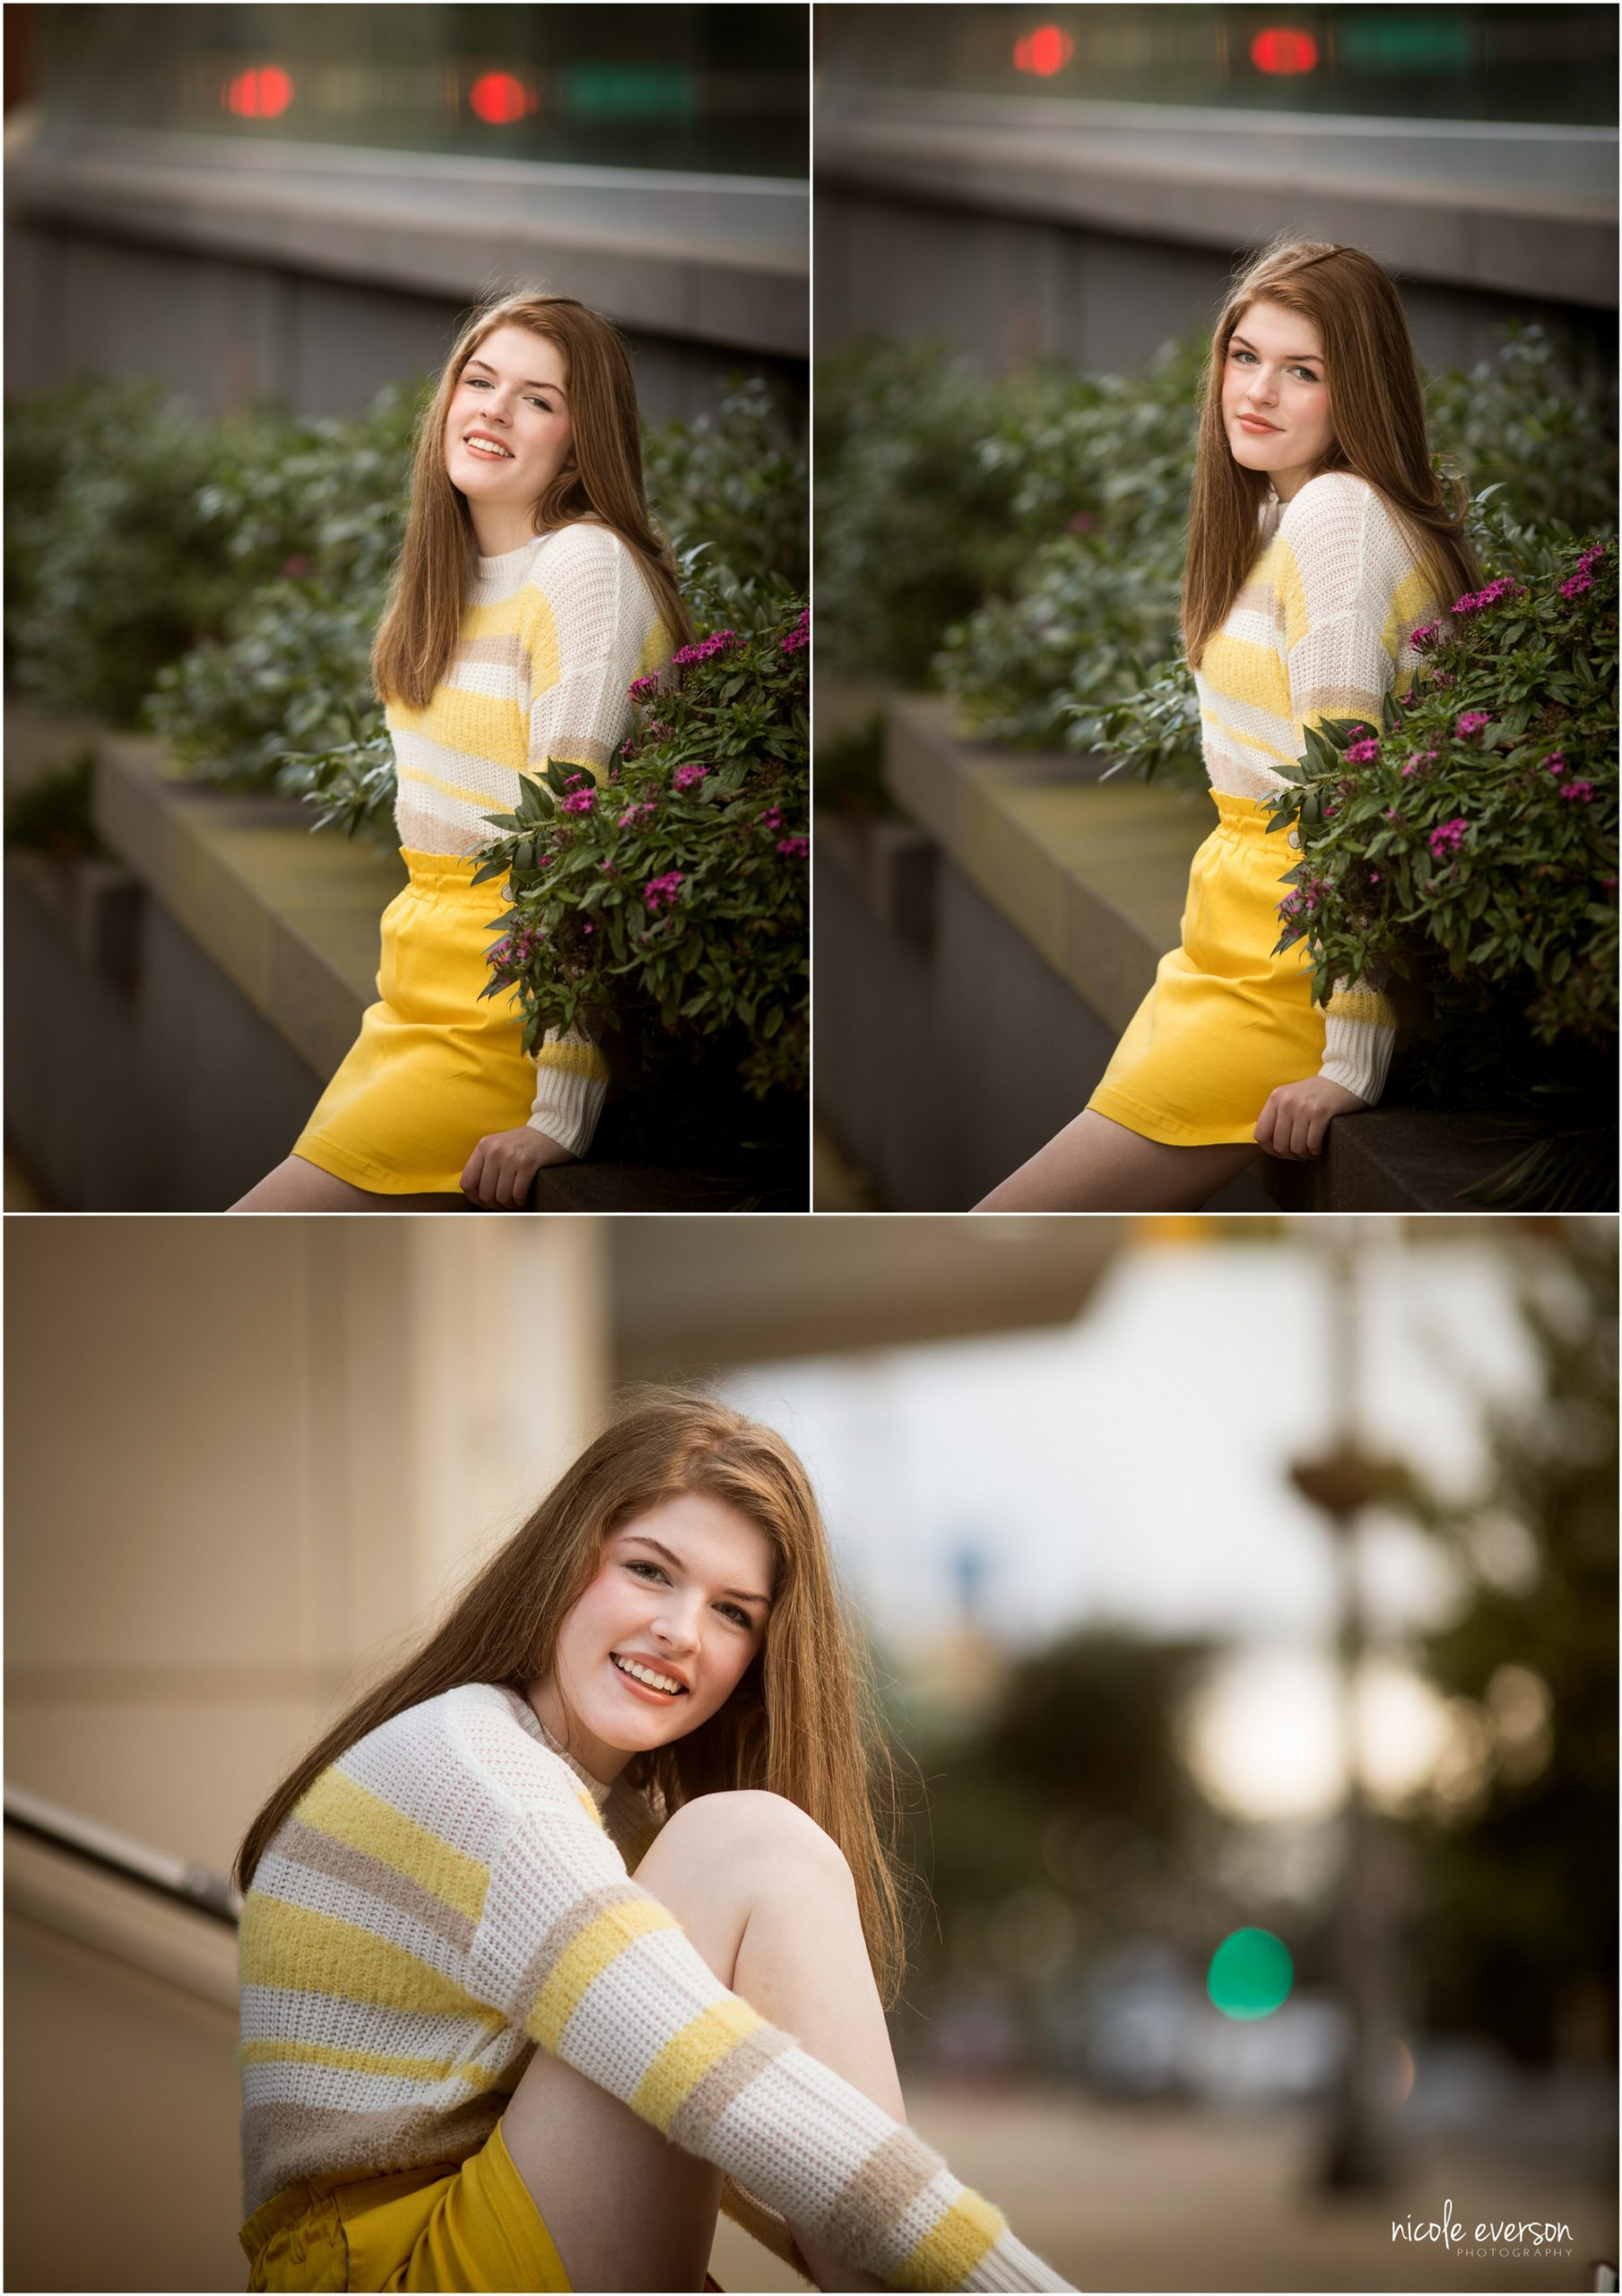 High school senior girl in a striped sweater and yellow skirt with black lace-up boots. Tallahassee, Florida Senior Photography. Nicole Everson Photography.